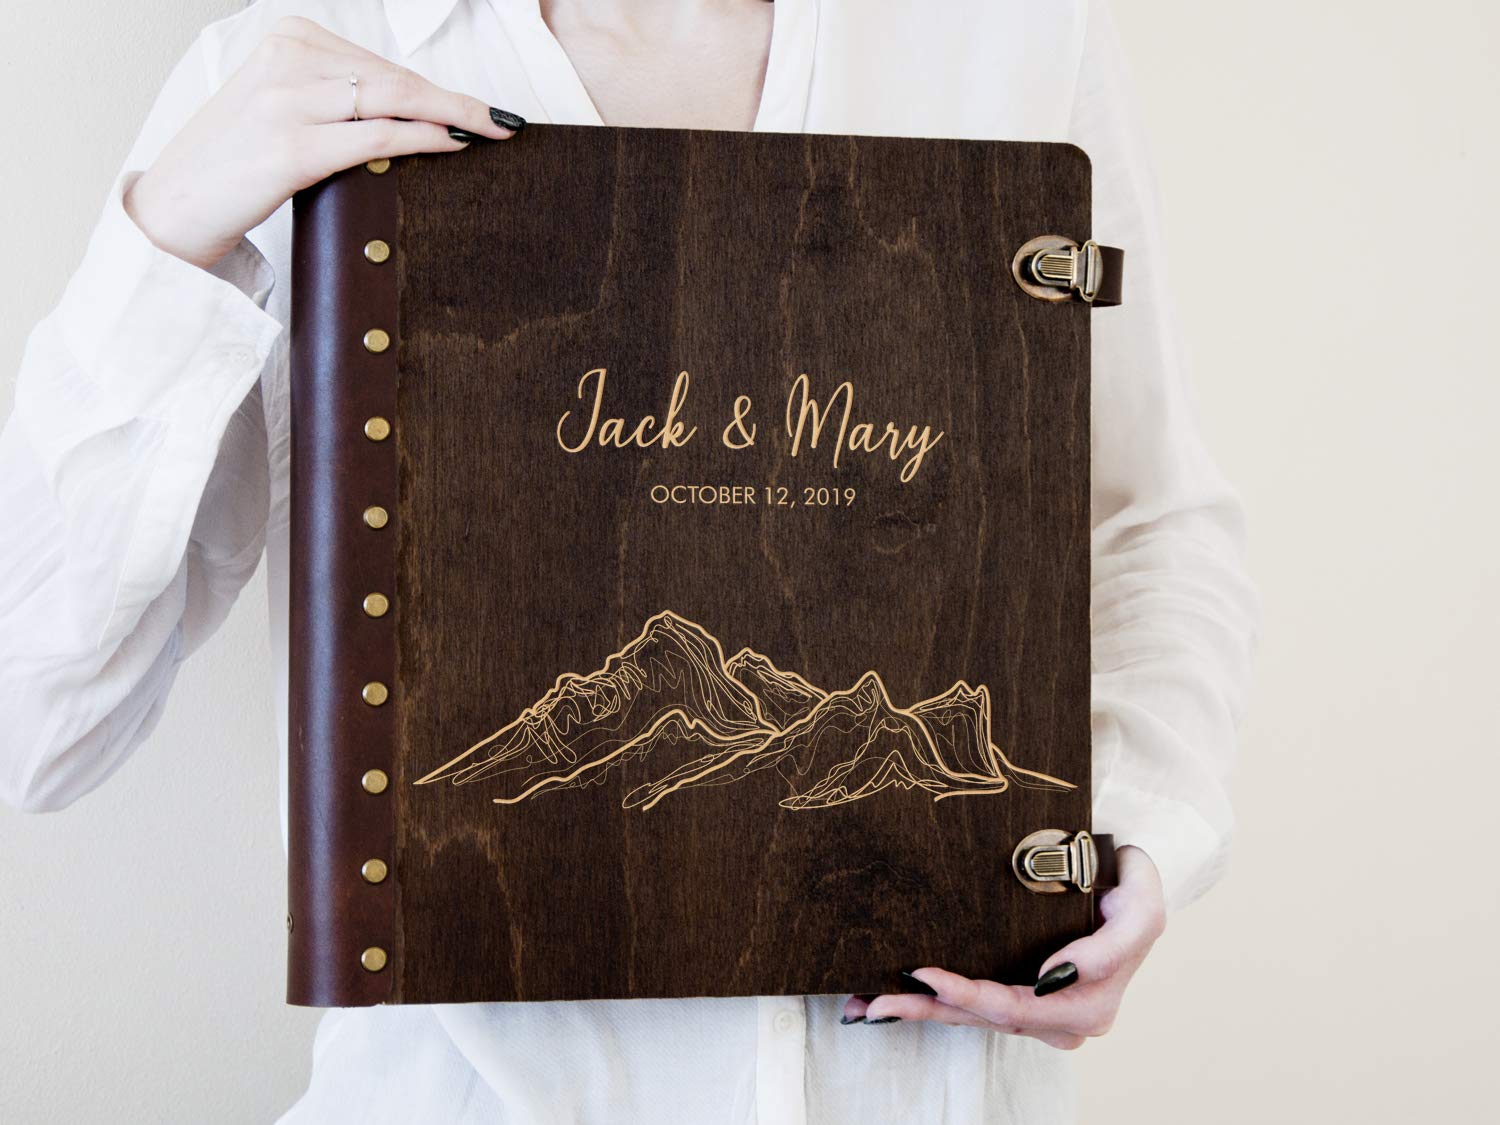 Travel Photo Album Personalized Wedding Photo Book with Self-Adhesive Sheets Mountain Lover Gift Wedding Gift for Couple Wooden Engraved Scrapbook Album Wedding Photo Album